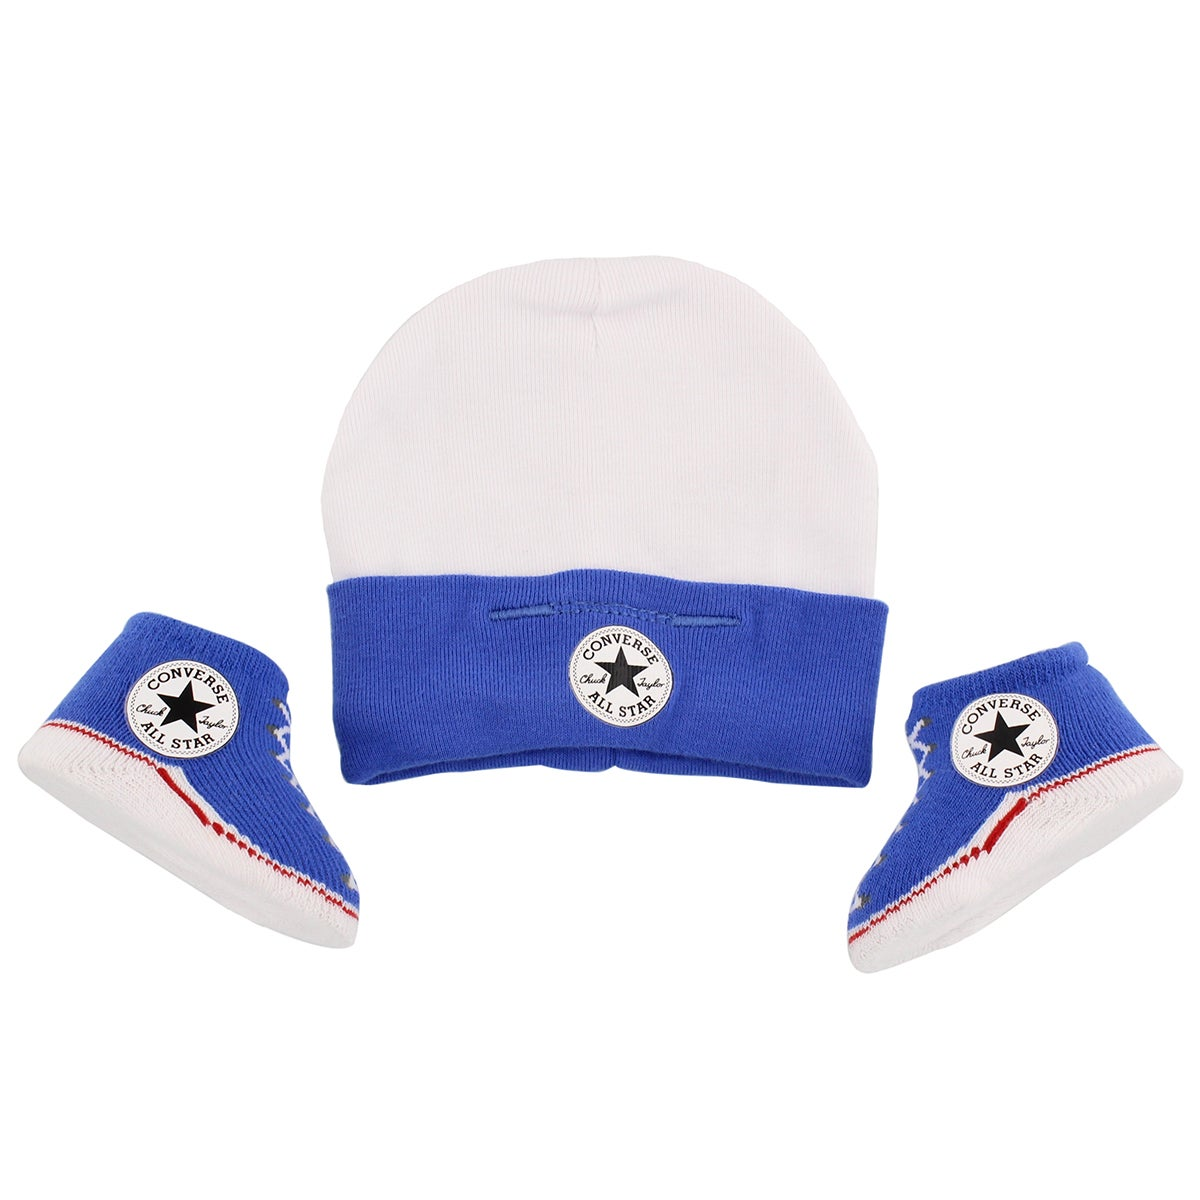 Infants' CONVERSE blue hat & bootie combo